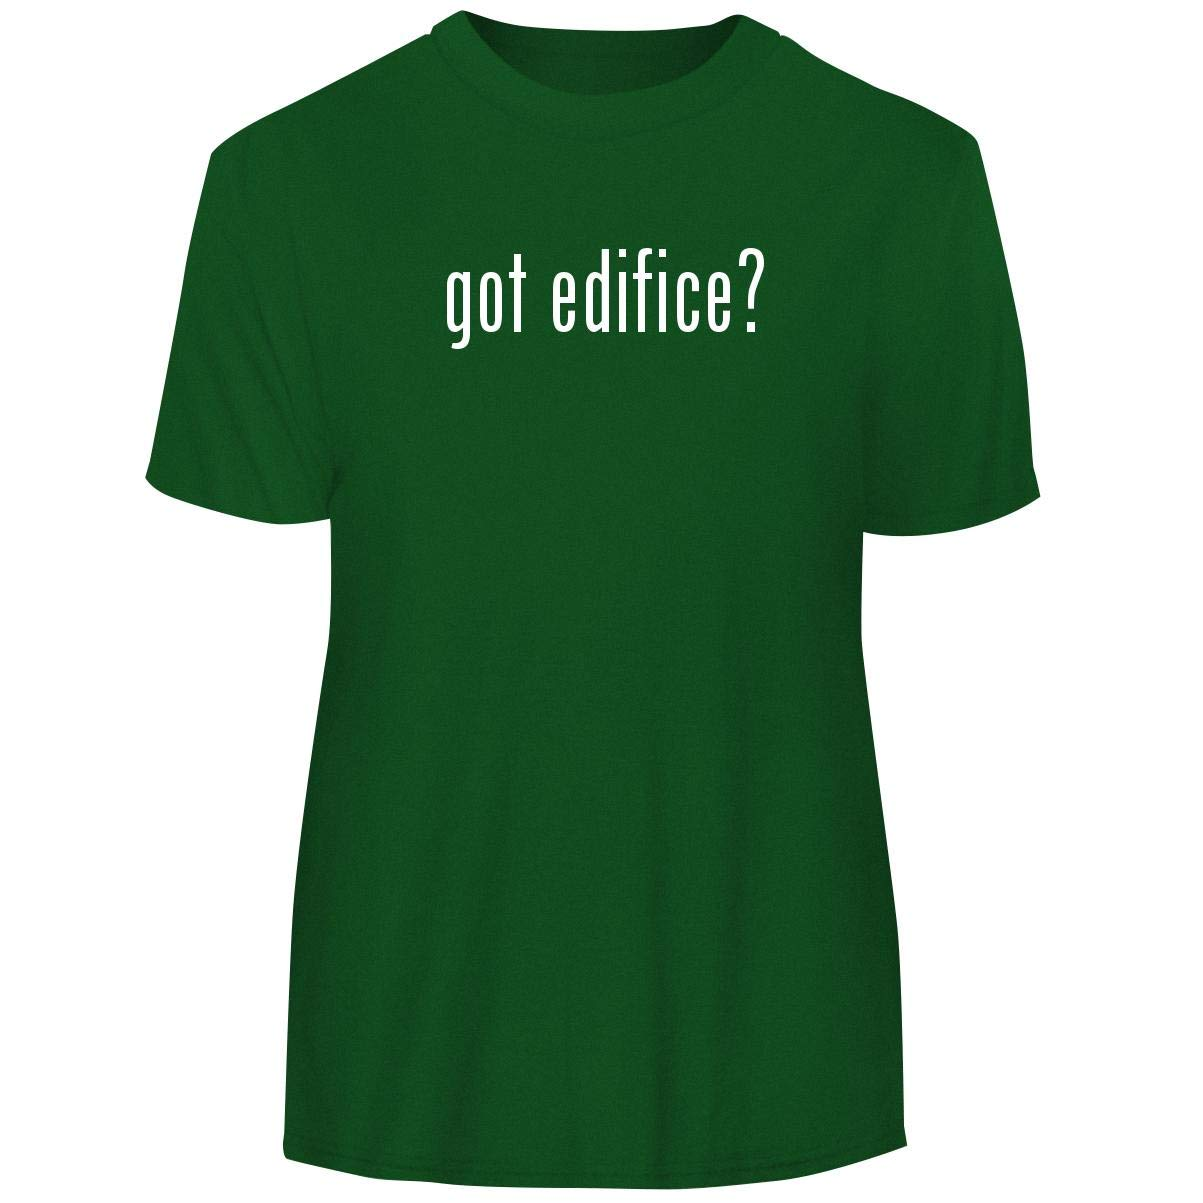 One Legging it Around got Edifice? - Men's Funny Soft Adult Tee T-Shirt, Green, XX-Large